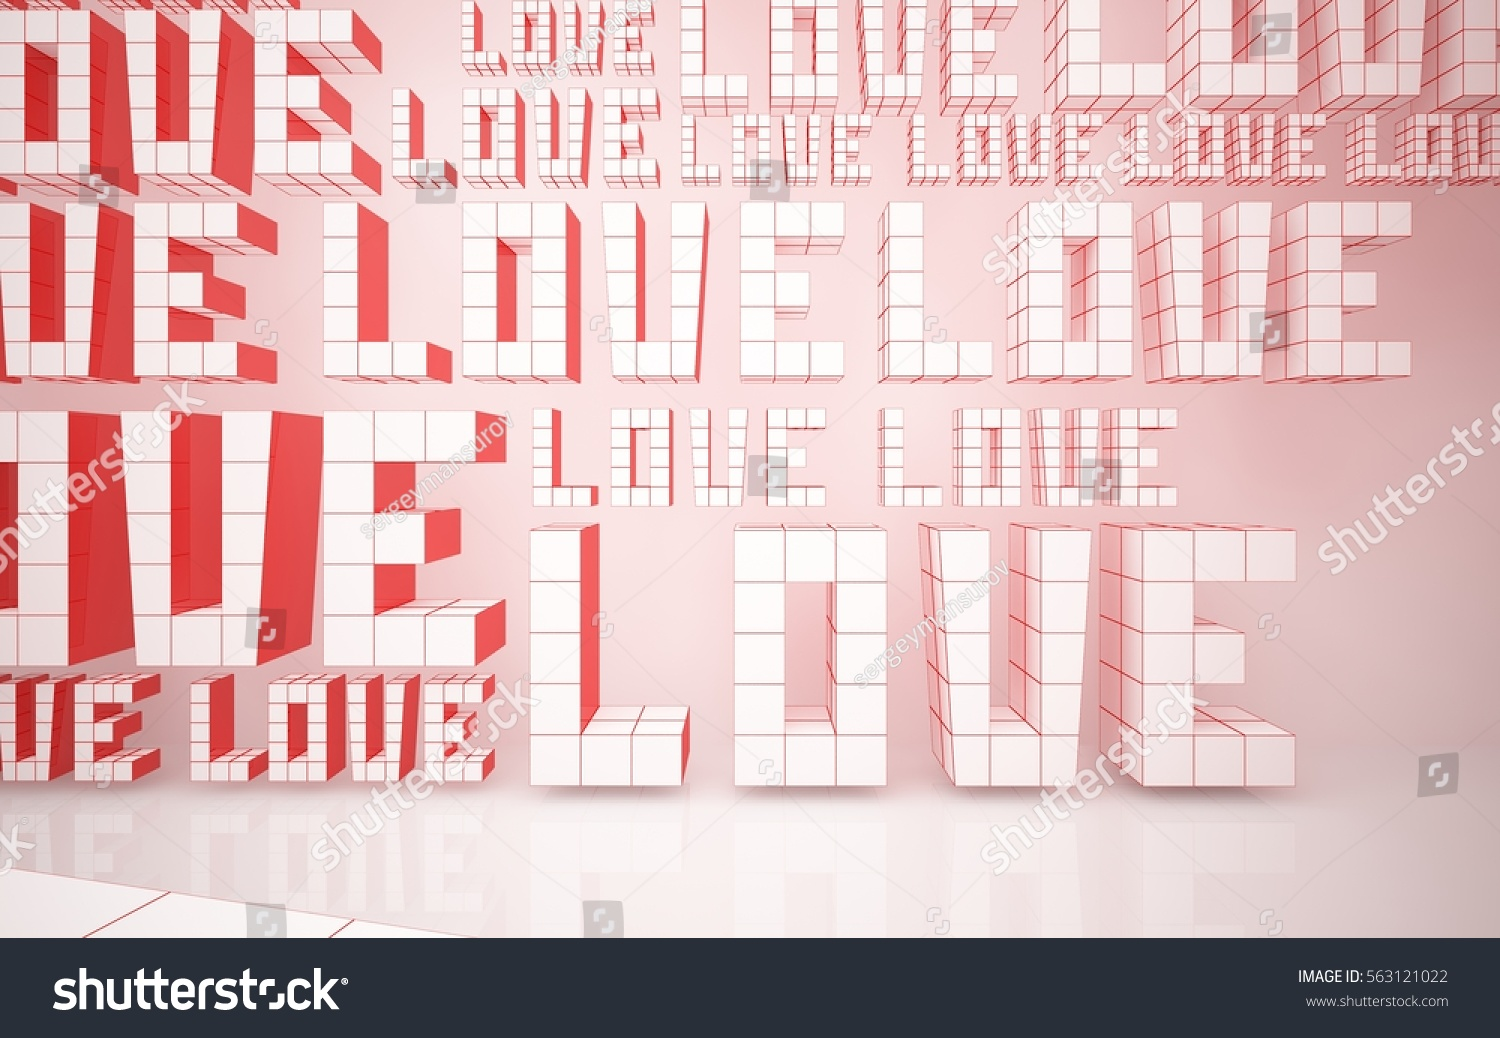 Drawing Lines In Word : Dream cloud word on abstract white background stock illustration